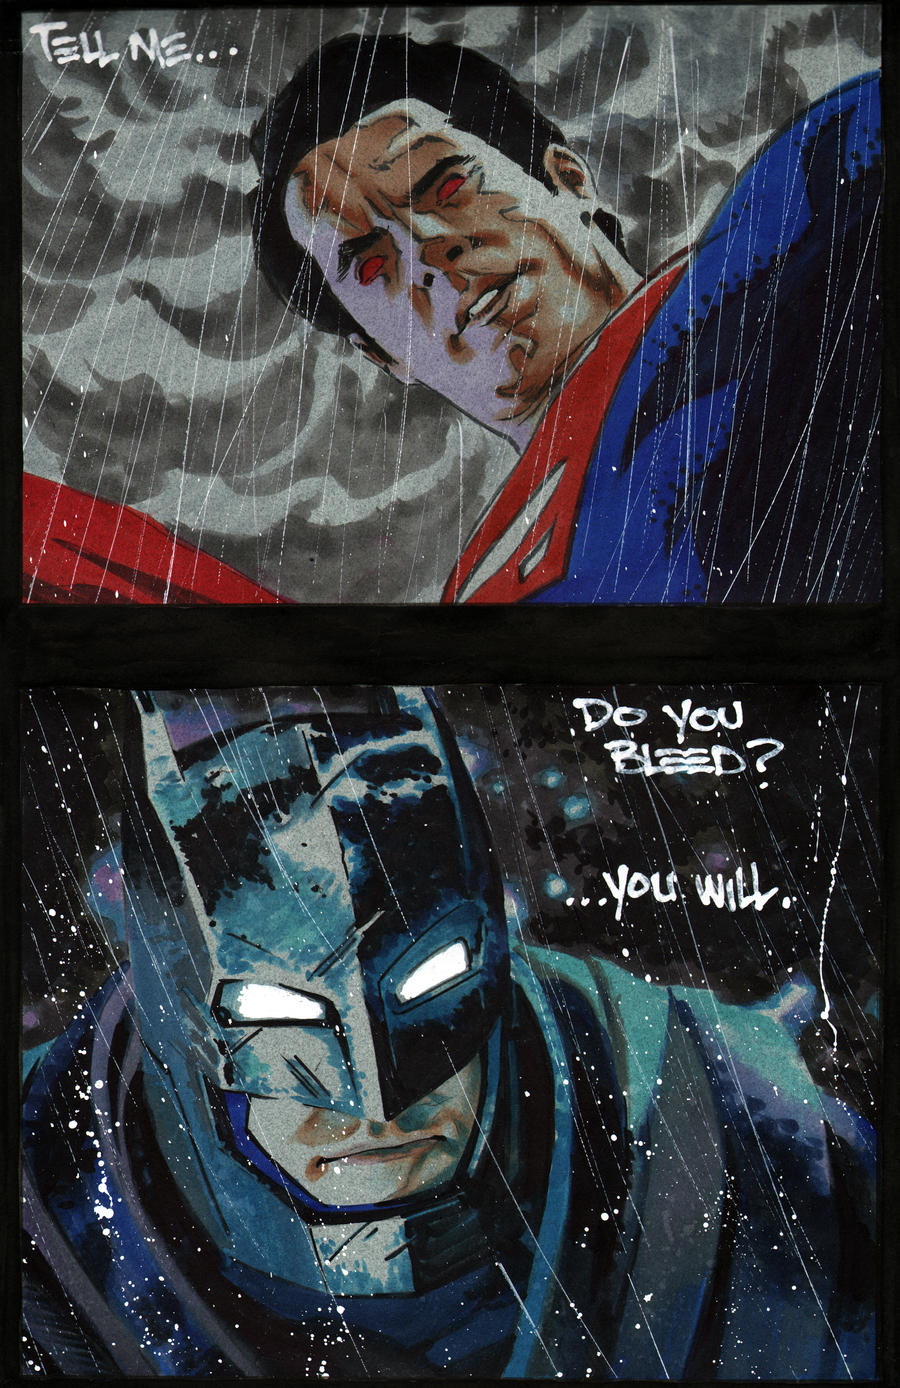 Tell me..Do you Bleed? by BroHawk on DeviantArt